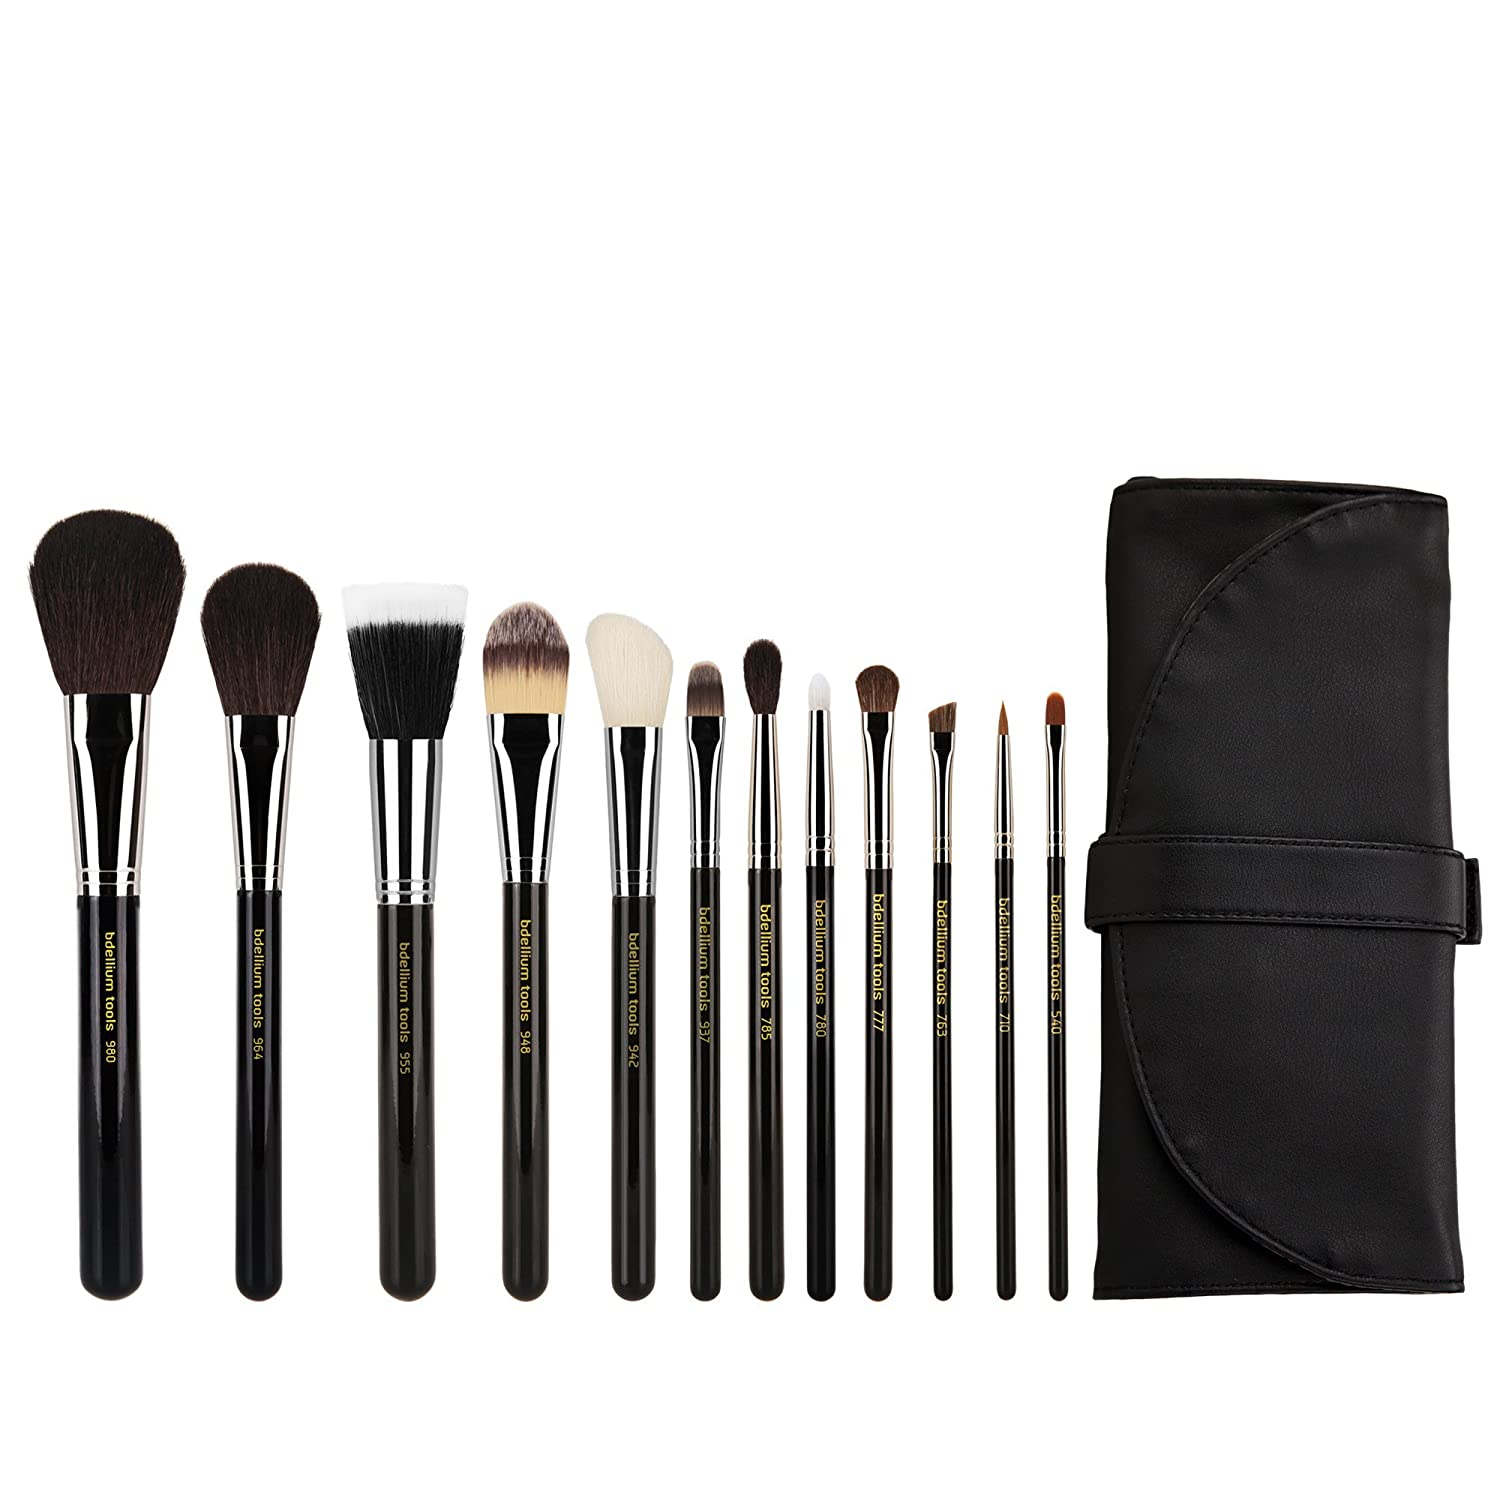 Bdellium Tools Professional Makeup Maestro Series Complete 12pc. Brush Set with Roll-up Pouch